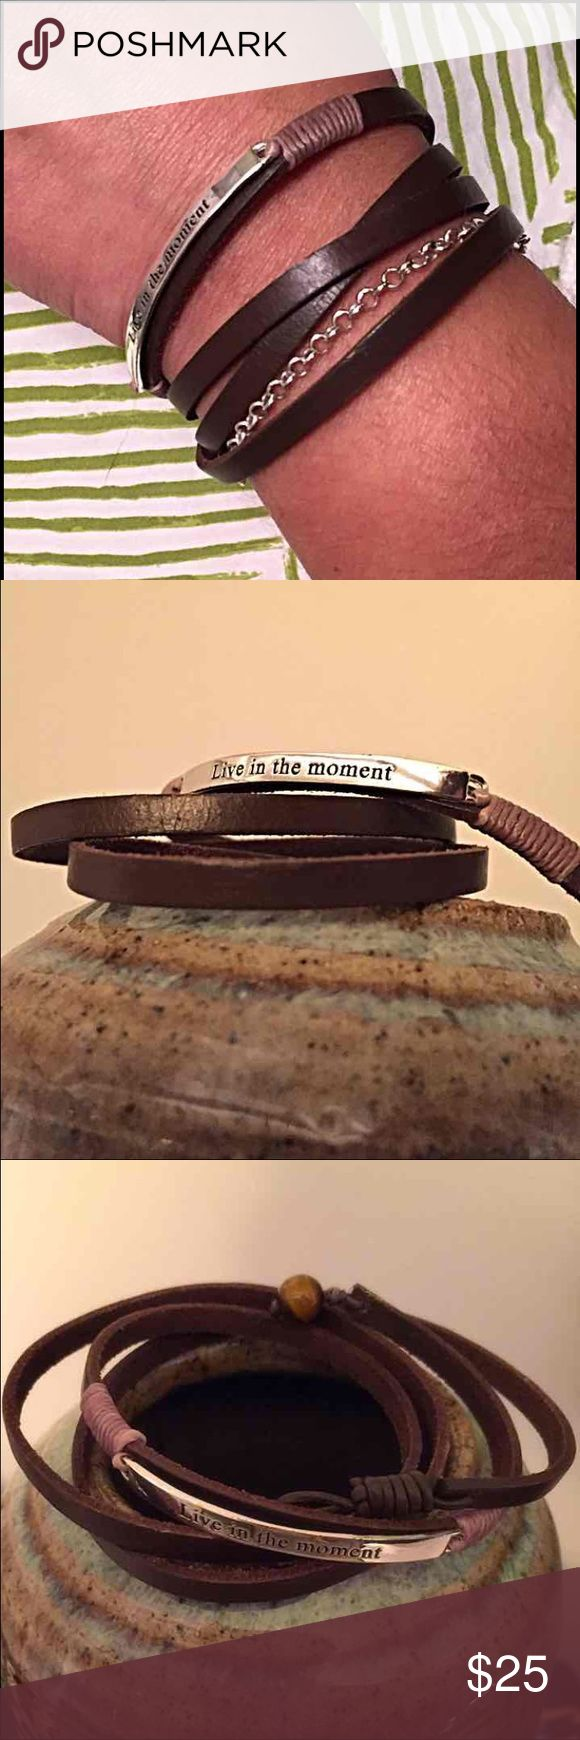 """'Live in the moment' Leather Wrap Bracelet Brown Leather Wrap Bracelet with Silver plate inscribed with """"Live in the moment"""" - Bead Loop closure - Length 29"""" - Wraps around my wrist 4 times - NWOT - I purchased at Kohl's a few years ago but have never worn it - Original Retail Price $50 Jewelry Bracelets"""